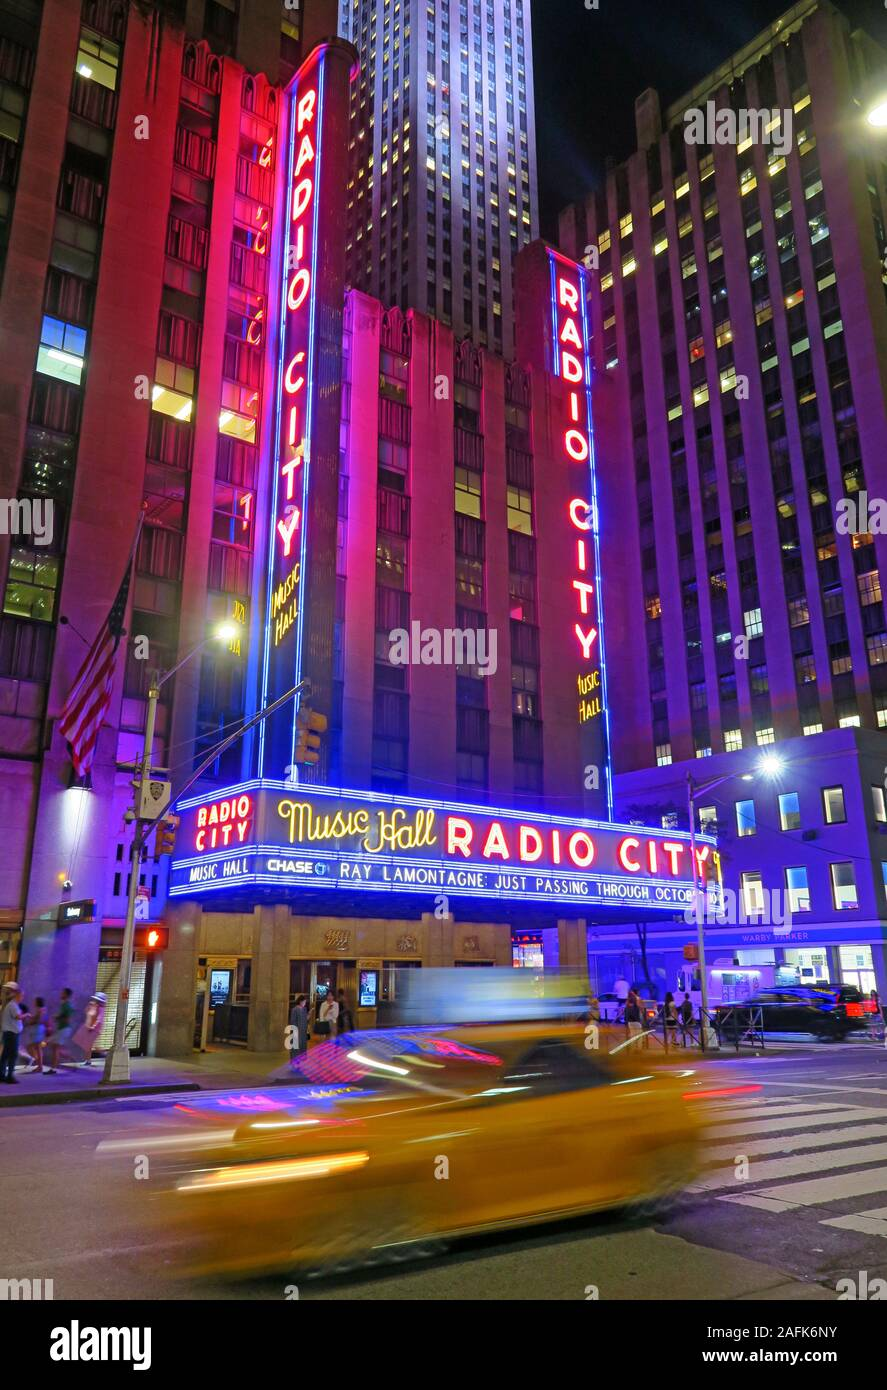 Radio City Music Hall facade New York, 1260 Avenue of the Americas (Sixth Avenue), Manhattan, New York City, NY, USA at night, neon lights Stock Photo